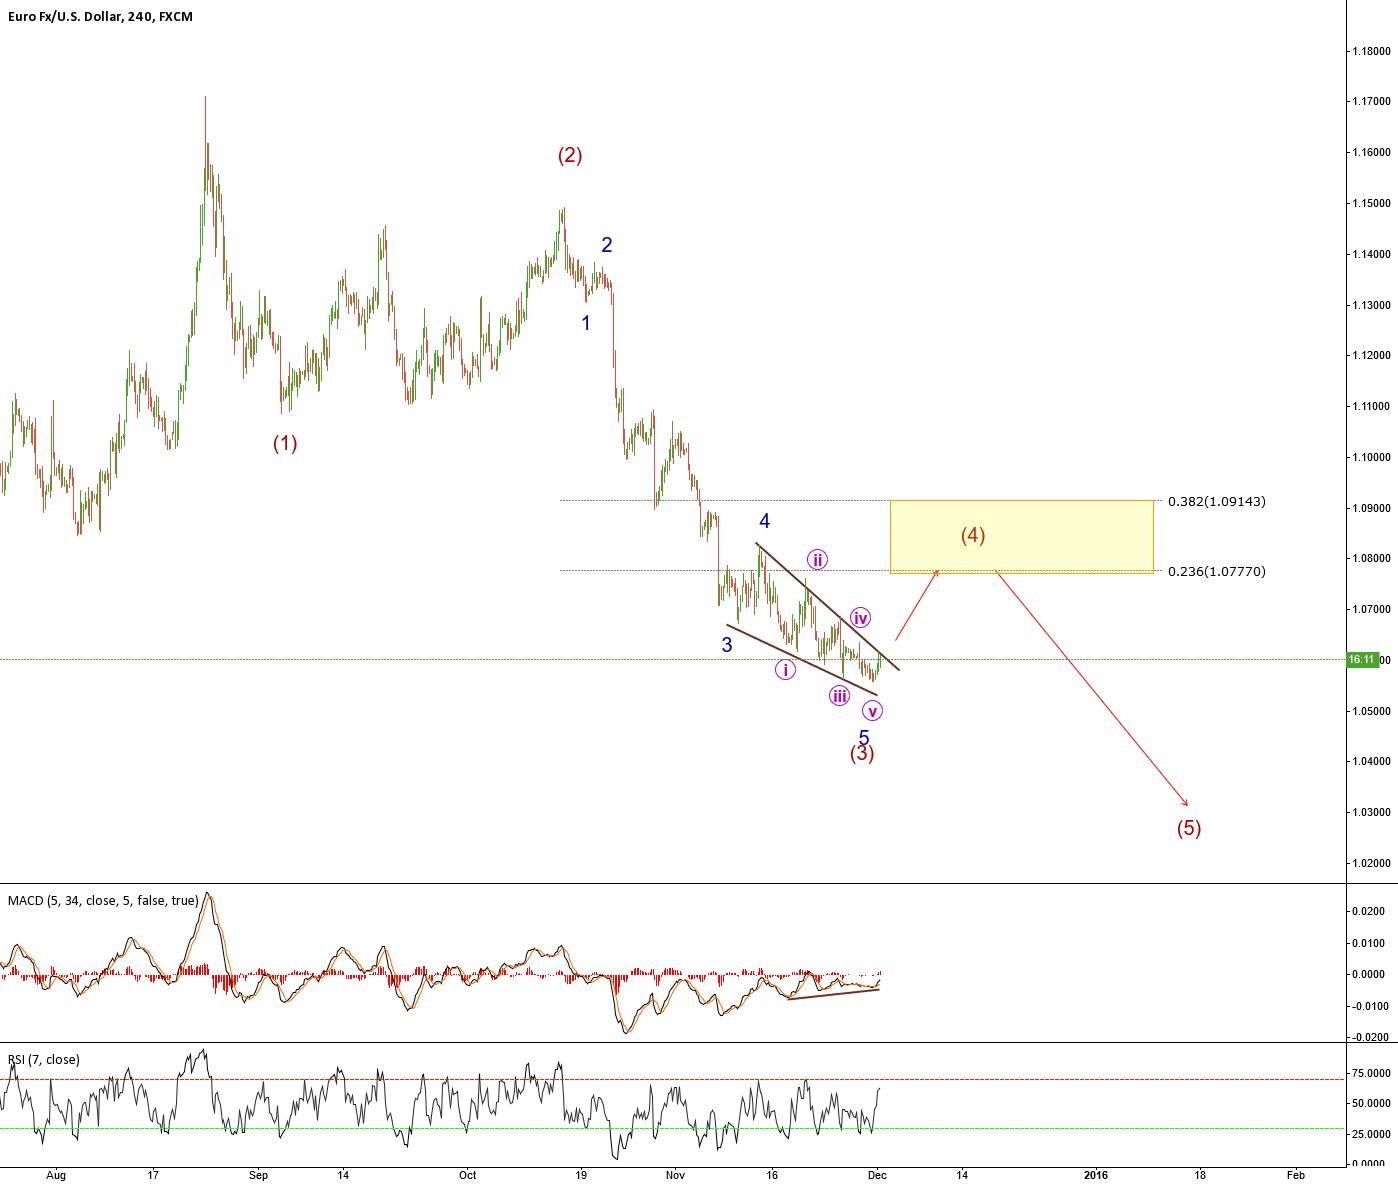 EURUSD Falling wedge - possible long opportunity